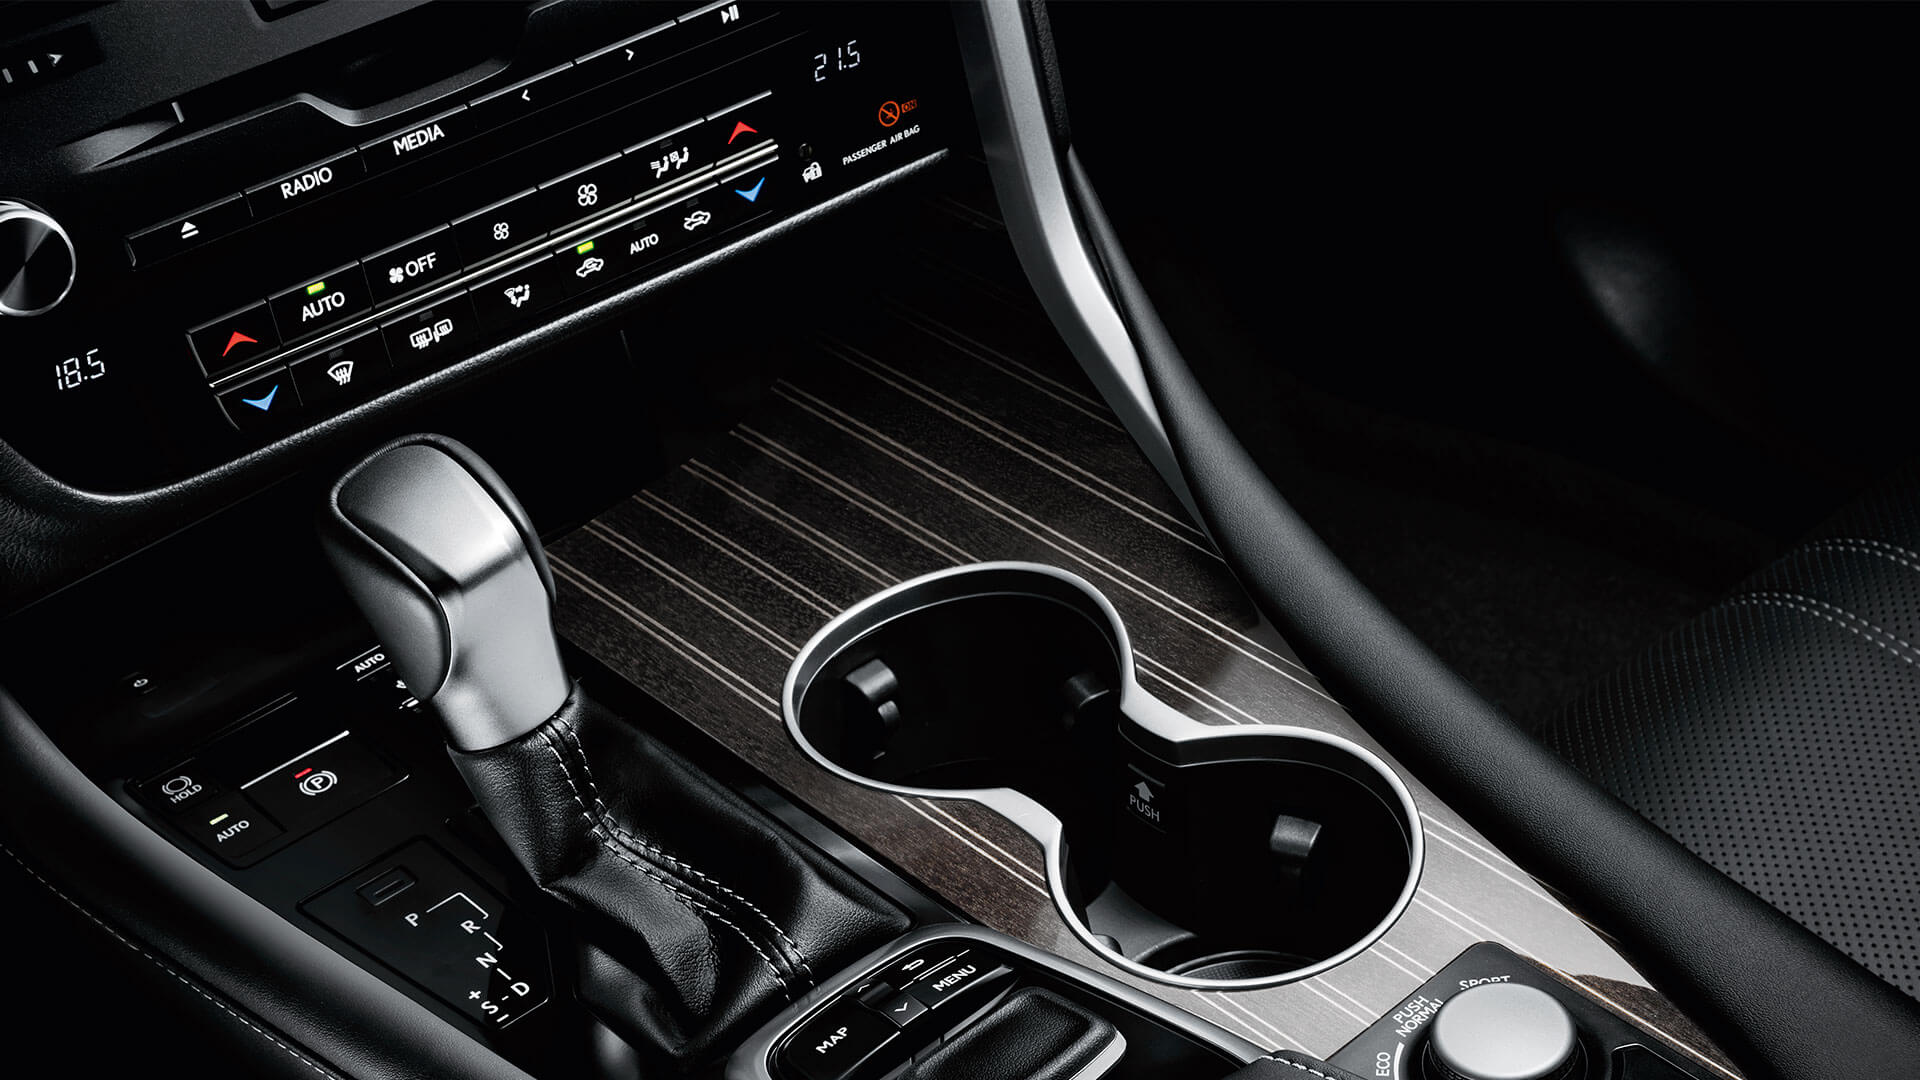 2017 lexus rx 200t features cup holders